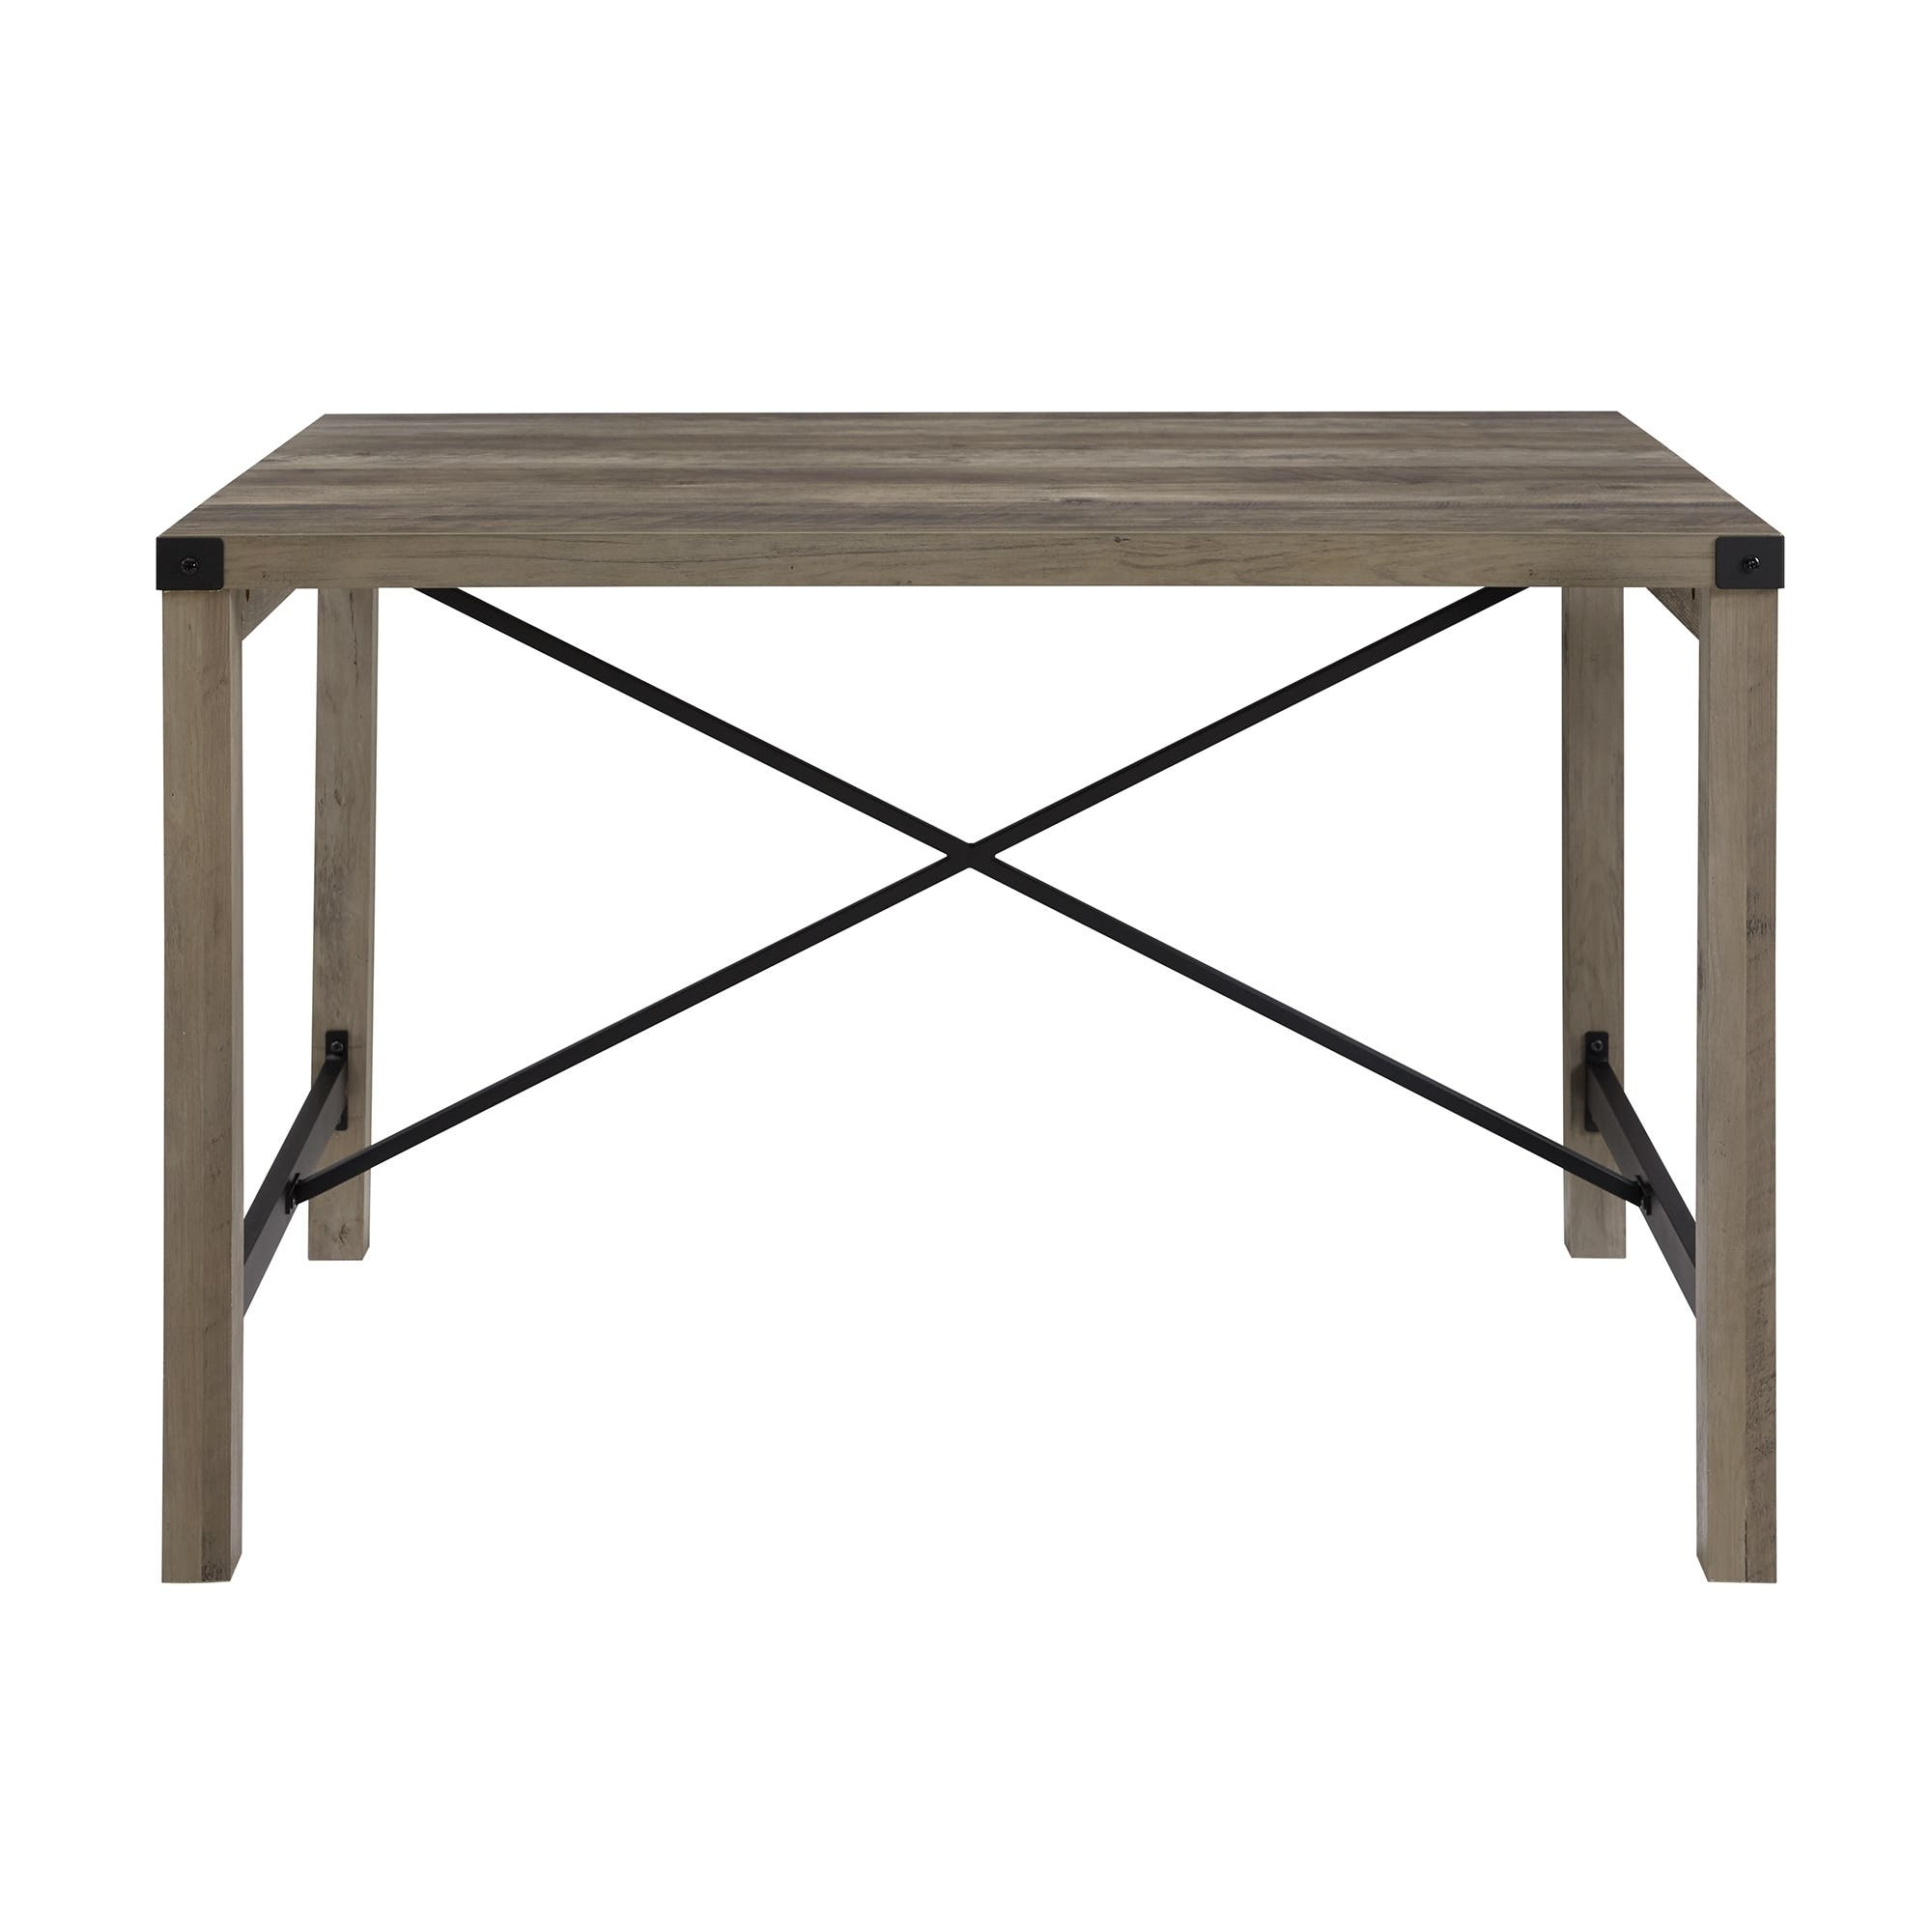 Great Deals On Furniture Online: Buy Kitchen & Dining Room Tables Online At Overstock